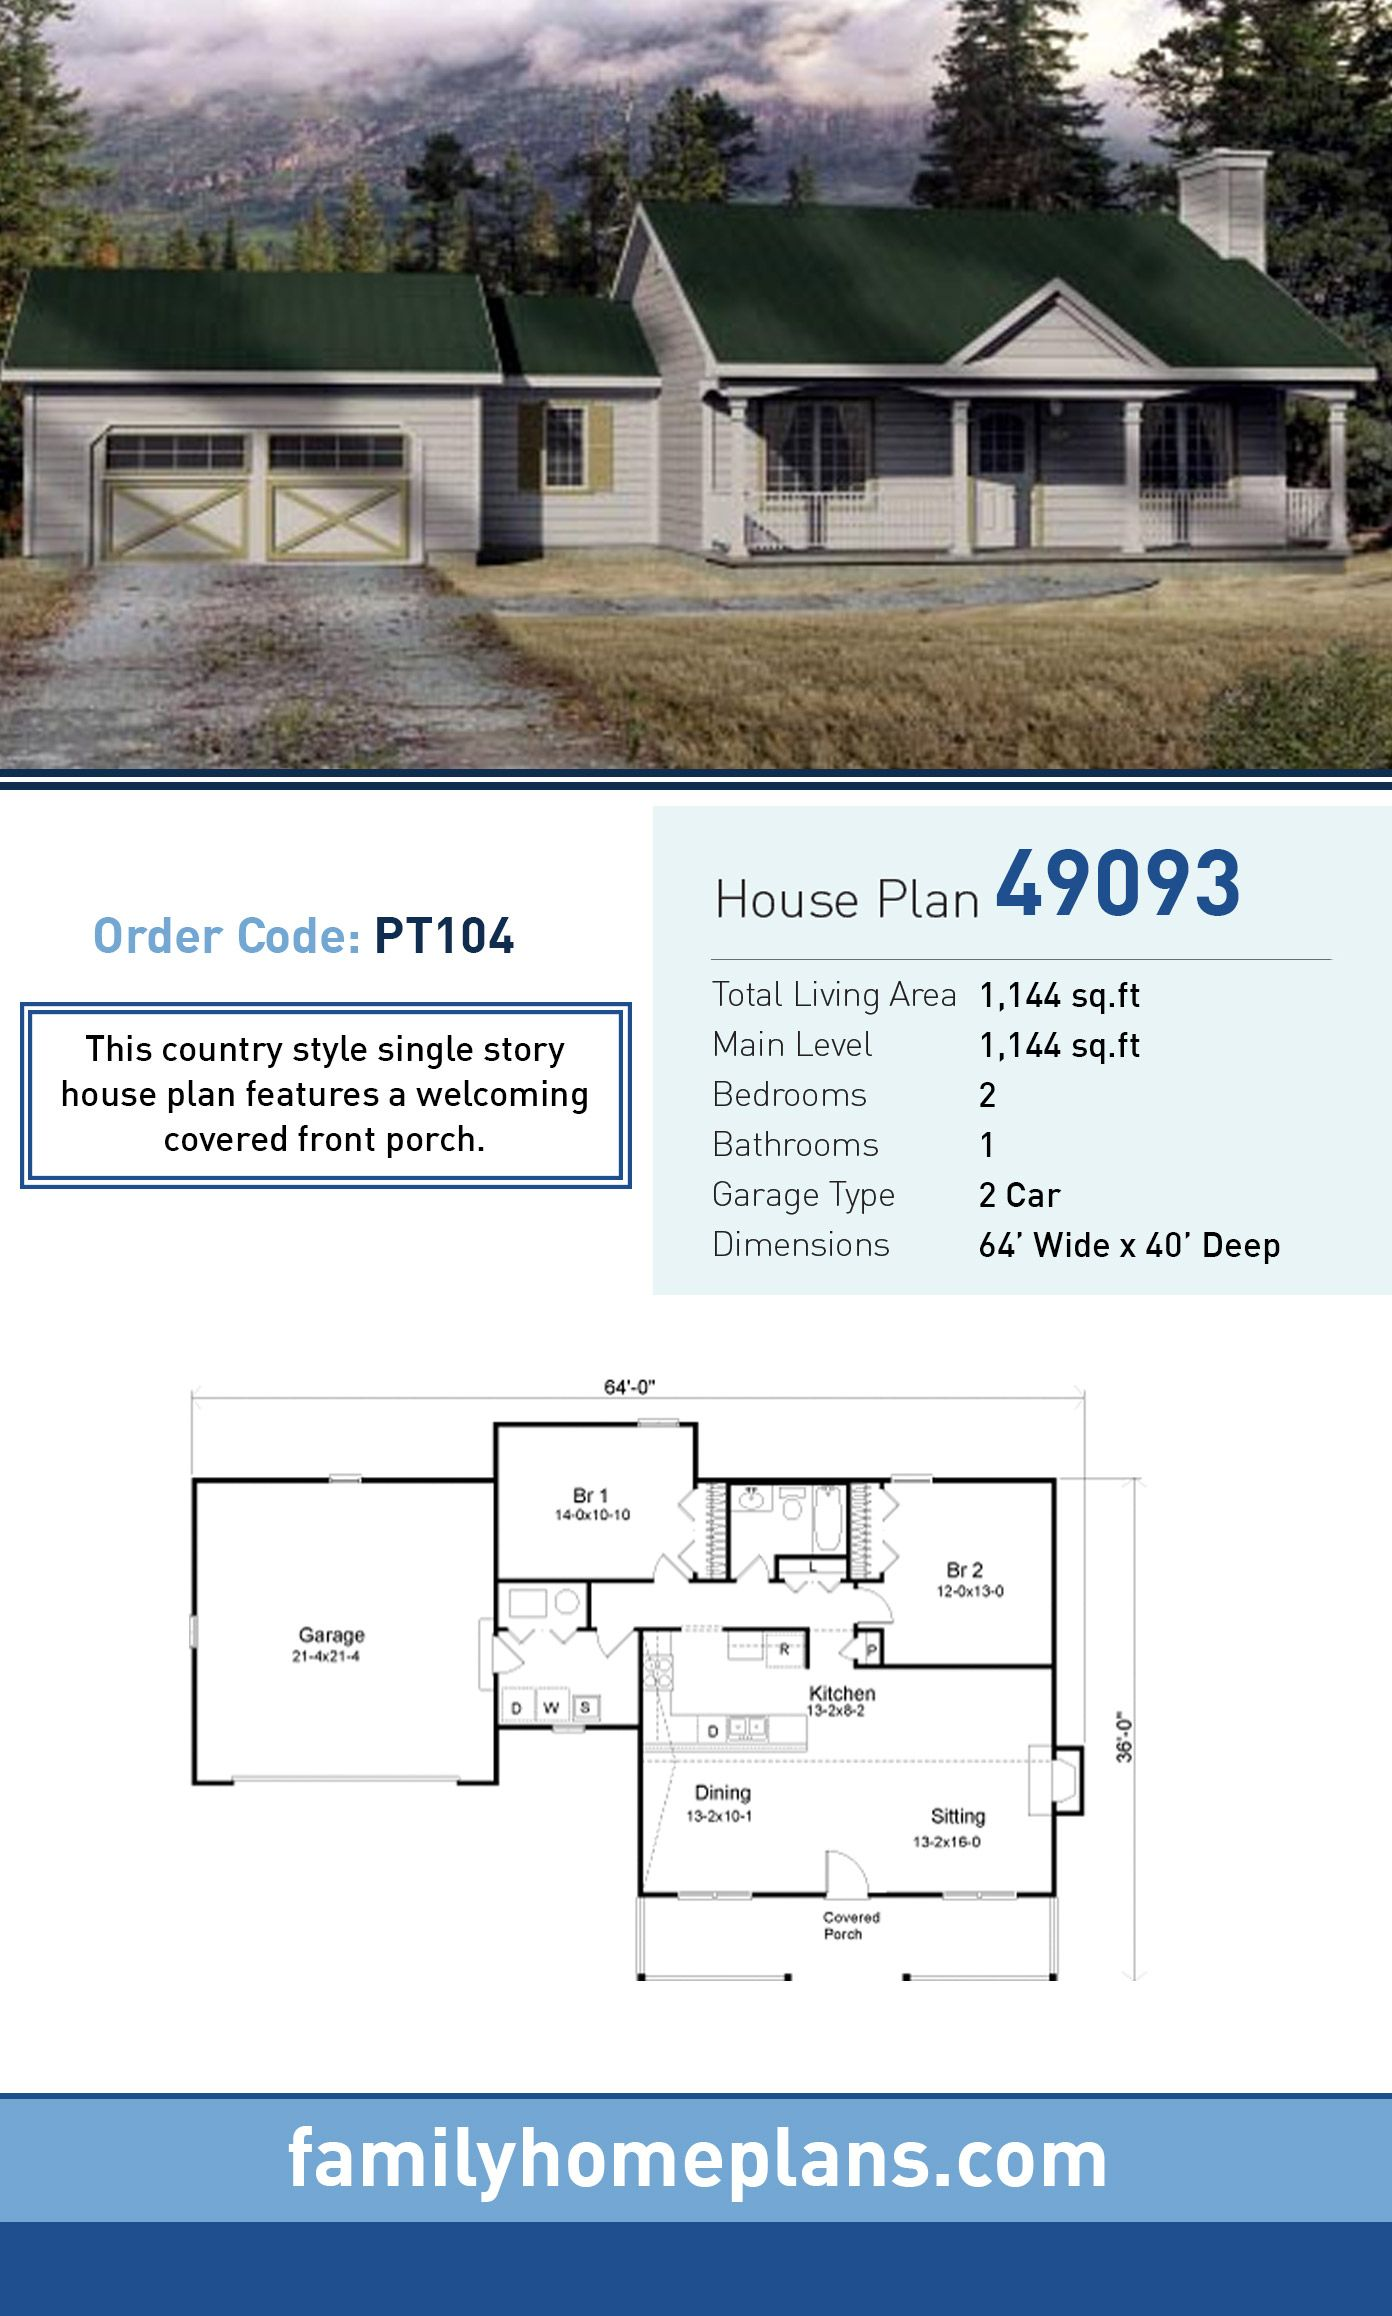 House Plan 49093 With 2 Bed 1 Bath 2 Car Garage House Plans Starter Home Plans Open House Plans